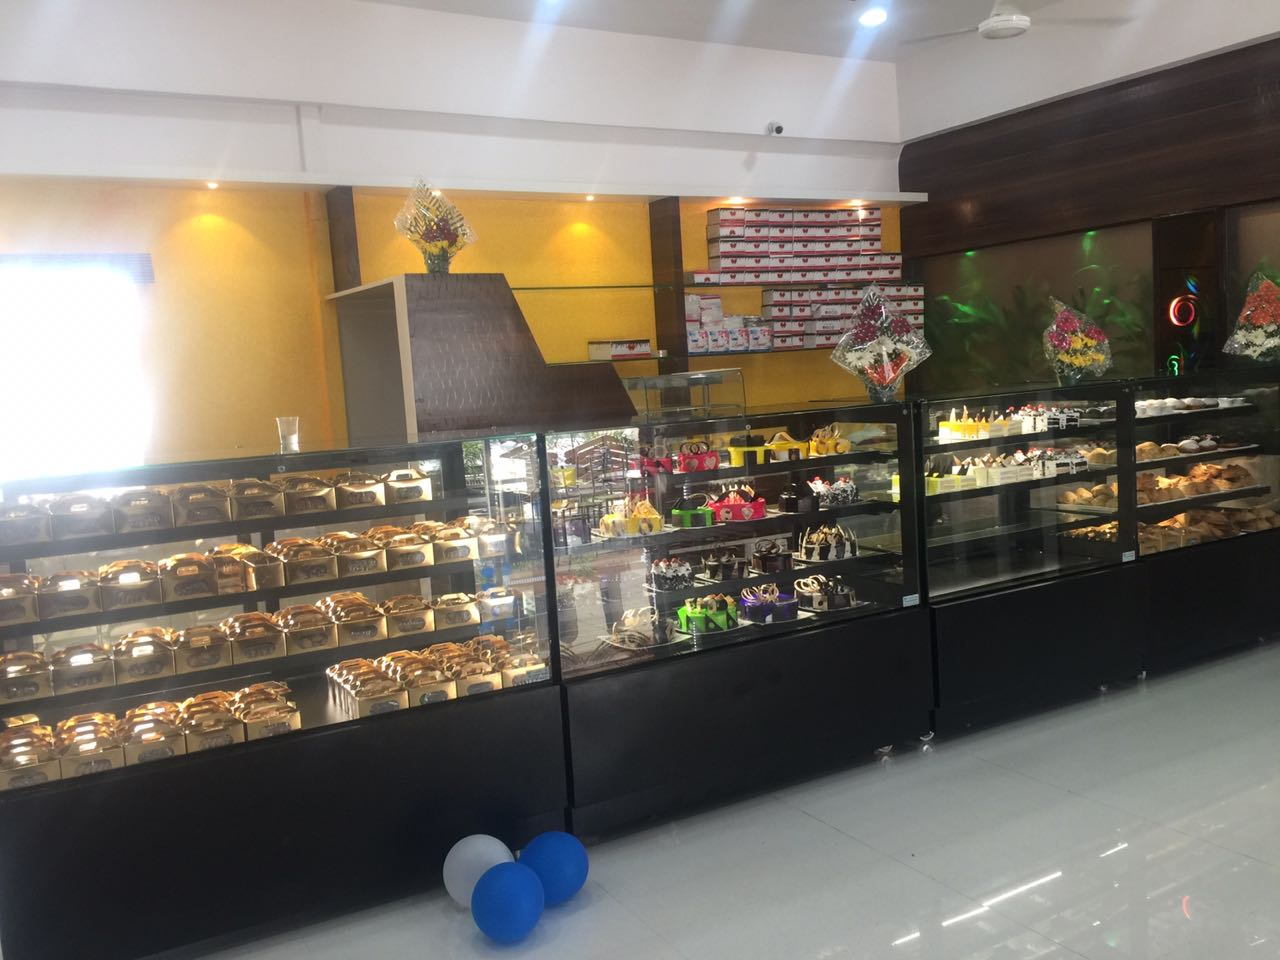 Highly Reputed Bakery having 8 Franchisees Looking to Raise Funds